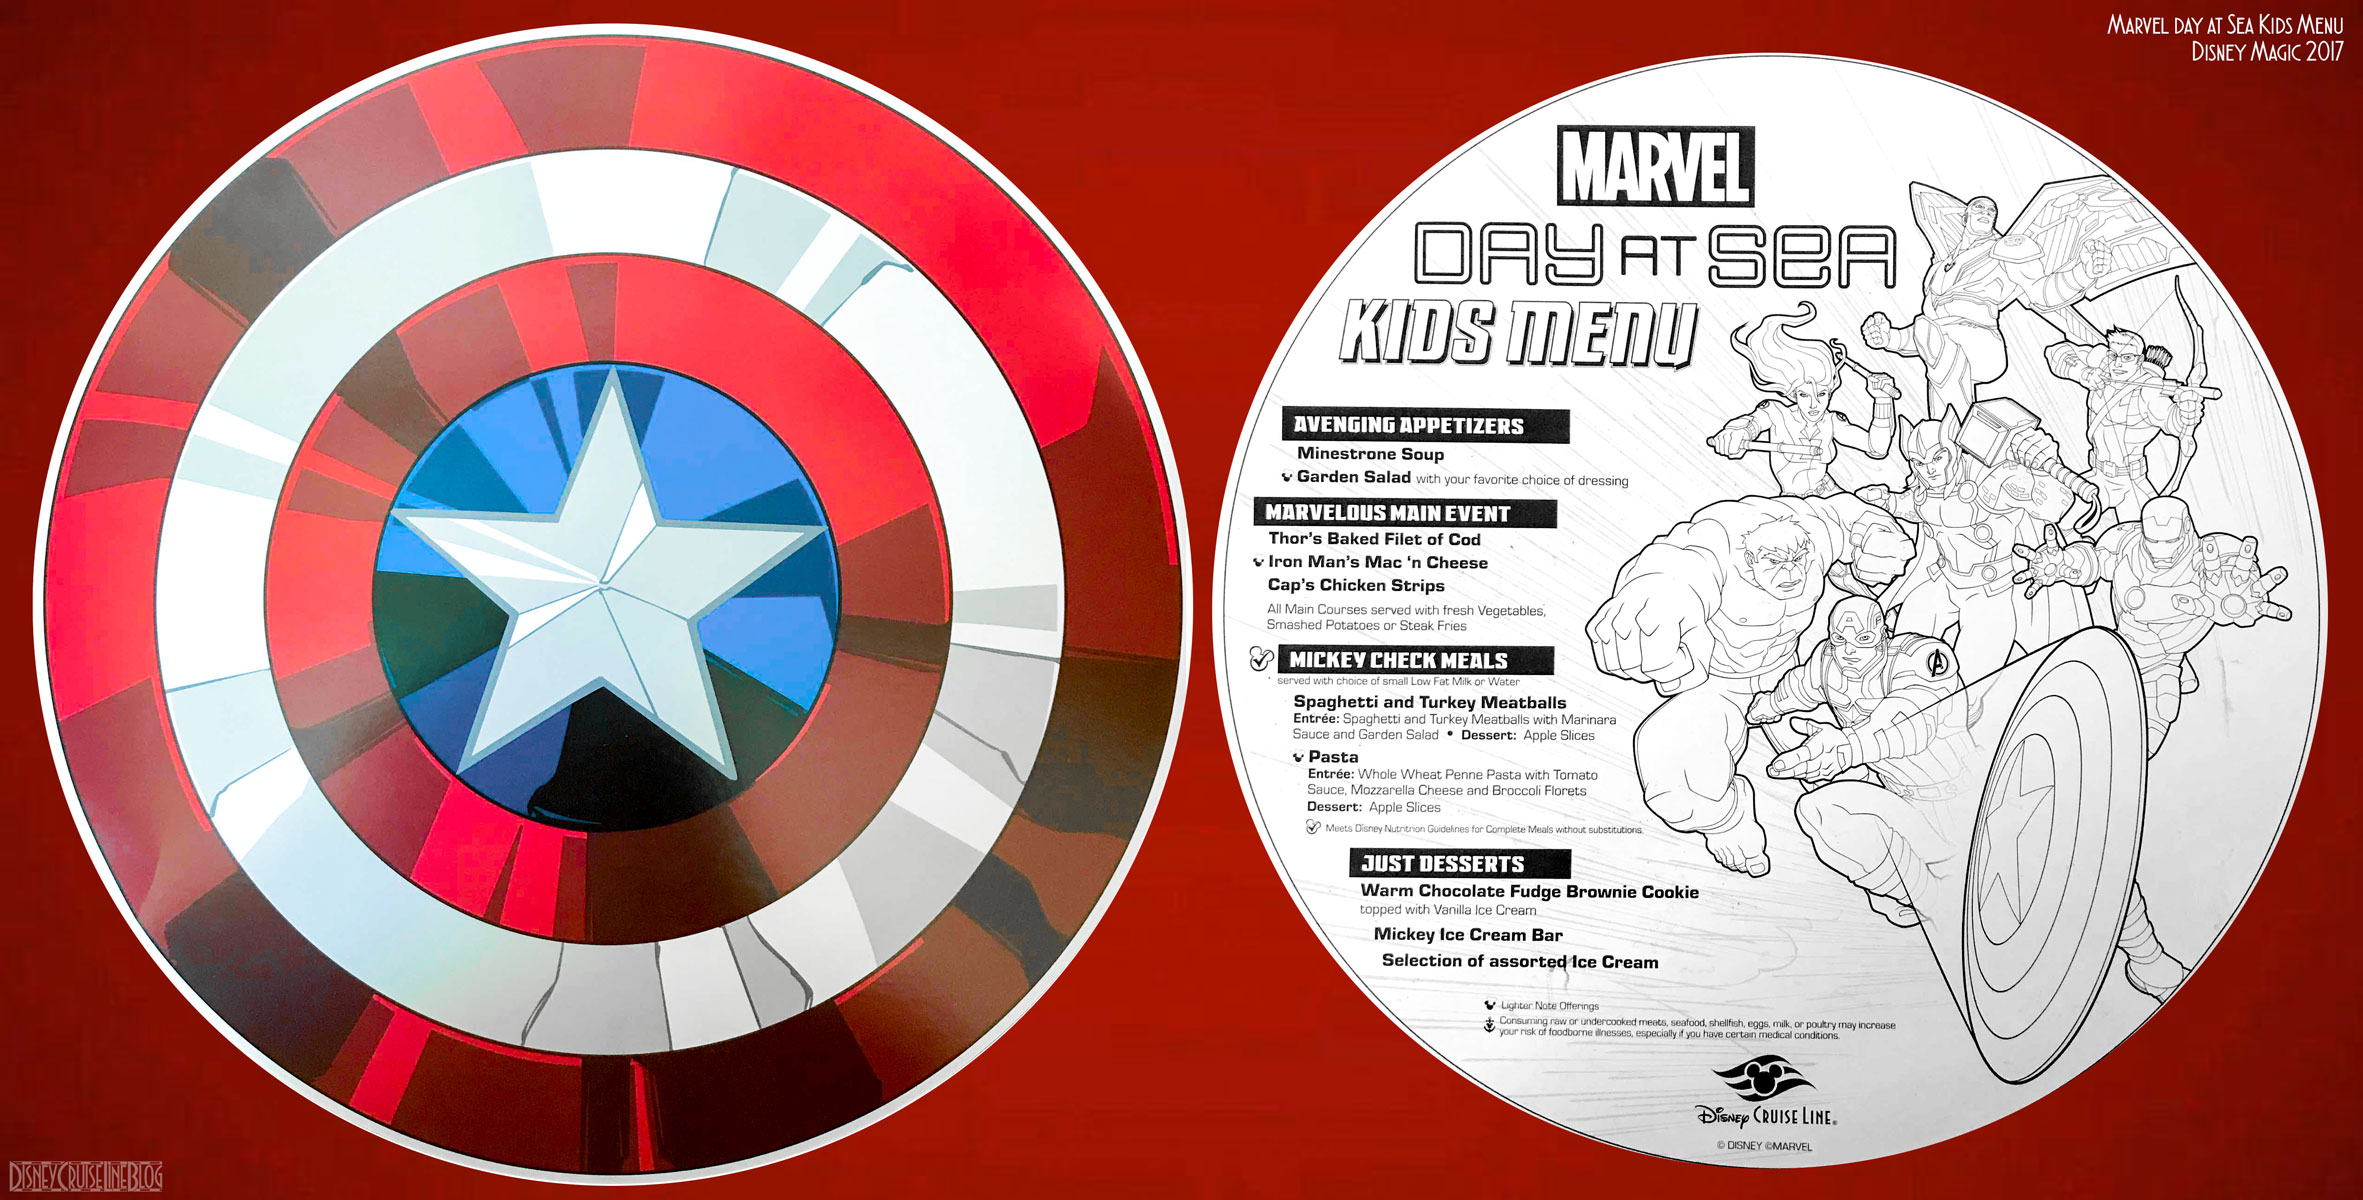 Pinterest Wallpapers Fall Marvel Day At Sea Menu The Disney Cruise Line Blog